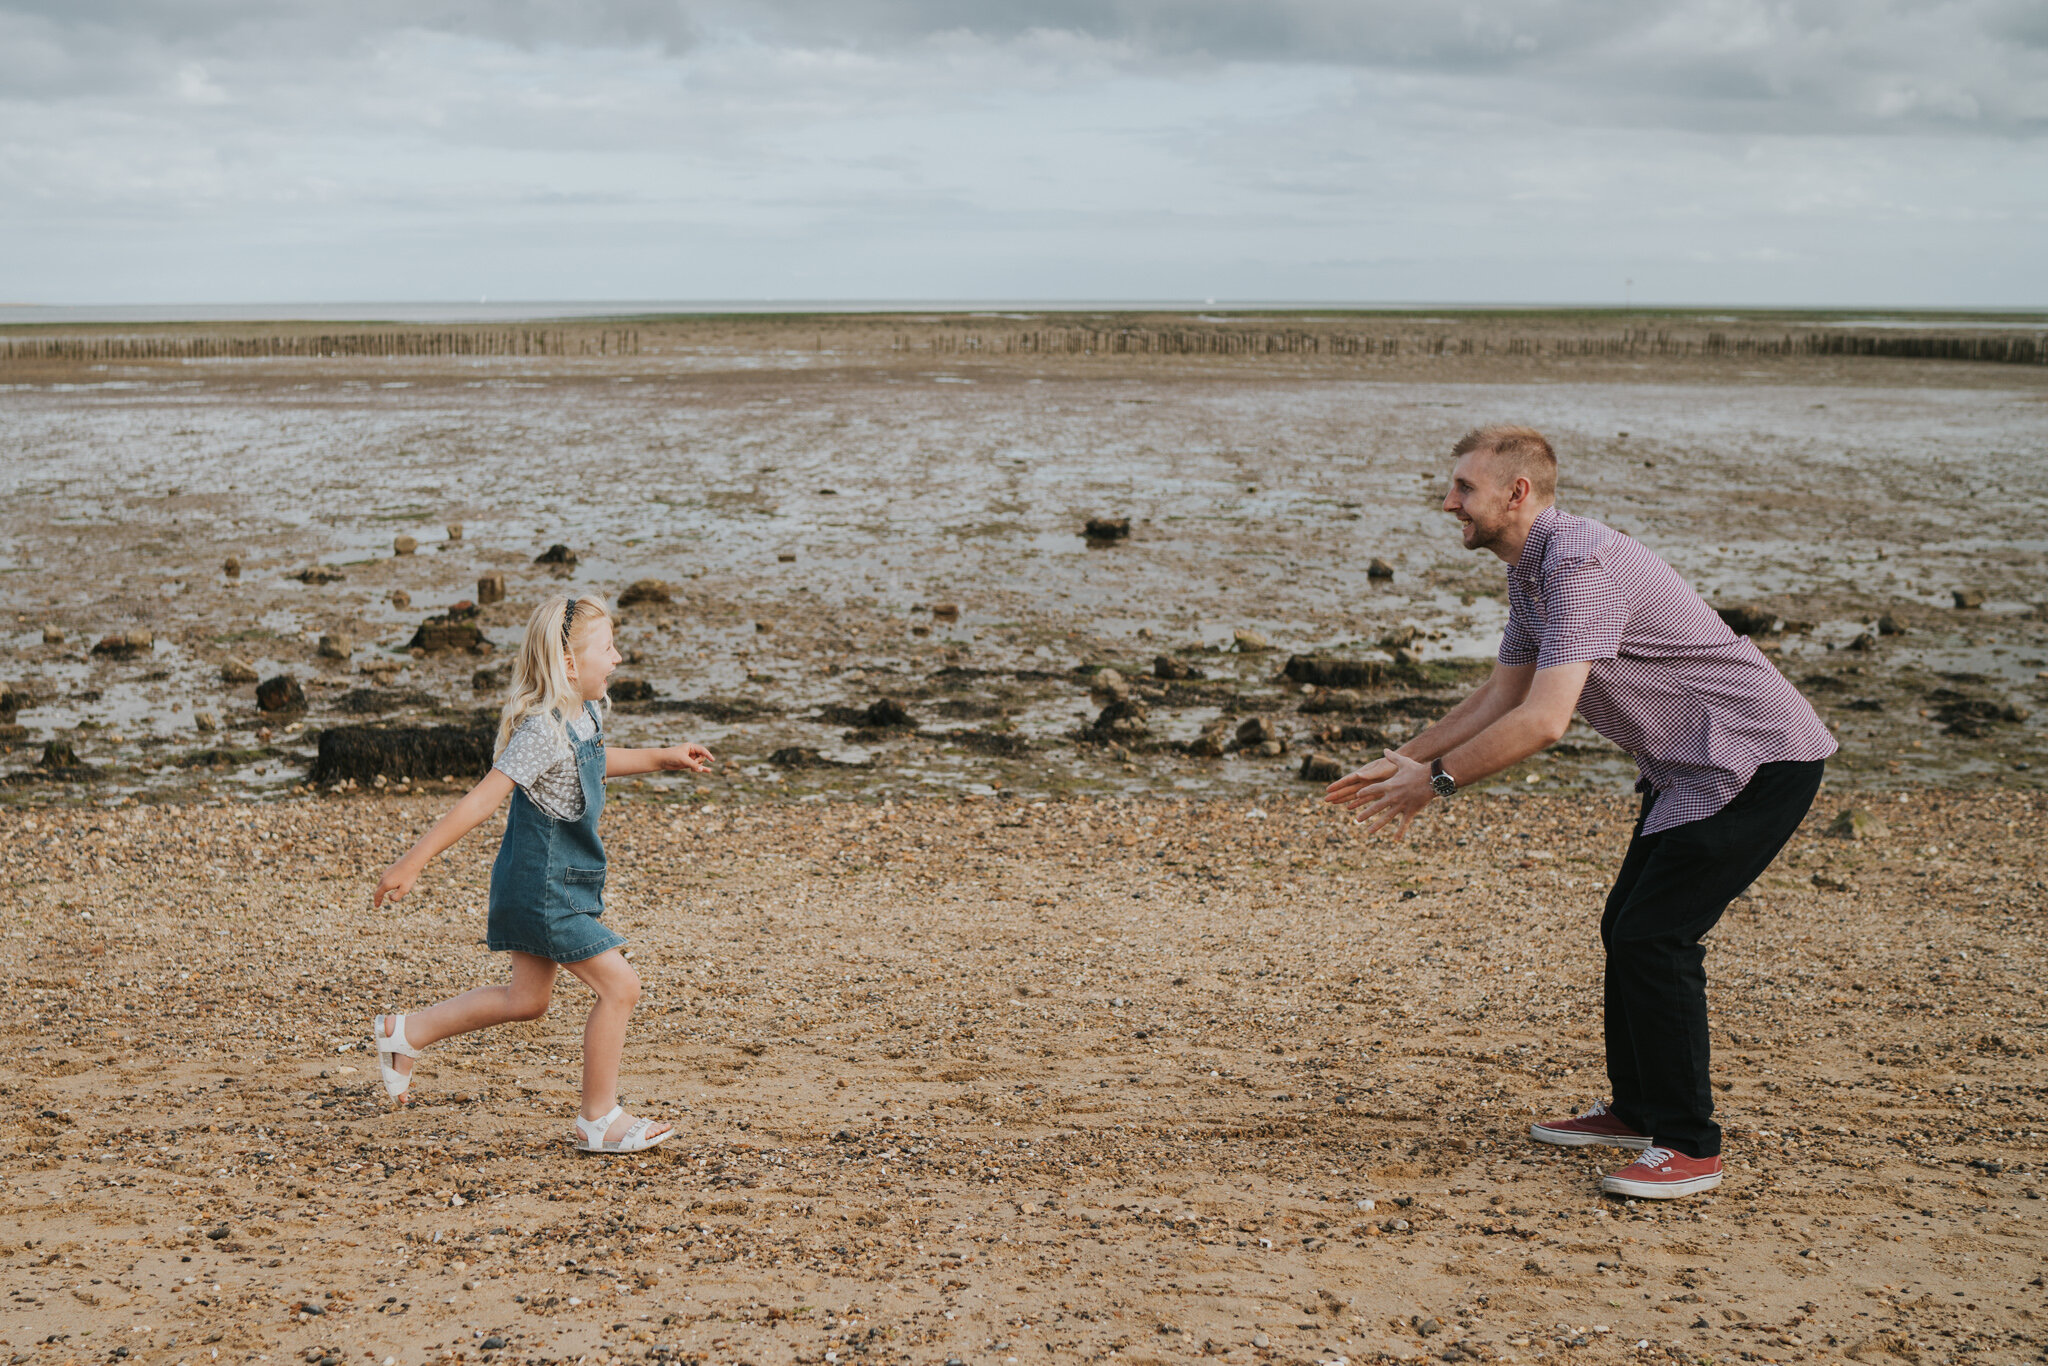 celebratory-beach-family-session-thomson-family-cudmore-grove-east-mersea-grace-elizabeth-colchester-essex-devon-suffolk-and-norfolk-alternative-wedding-and-family-photographer (23 of 53).jpg